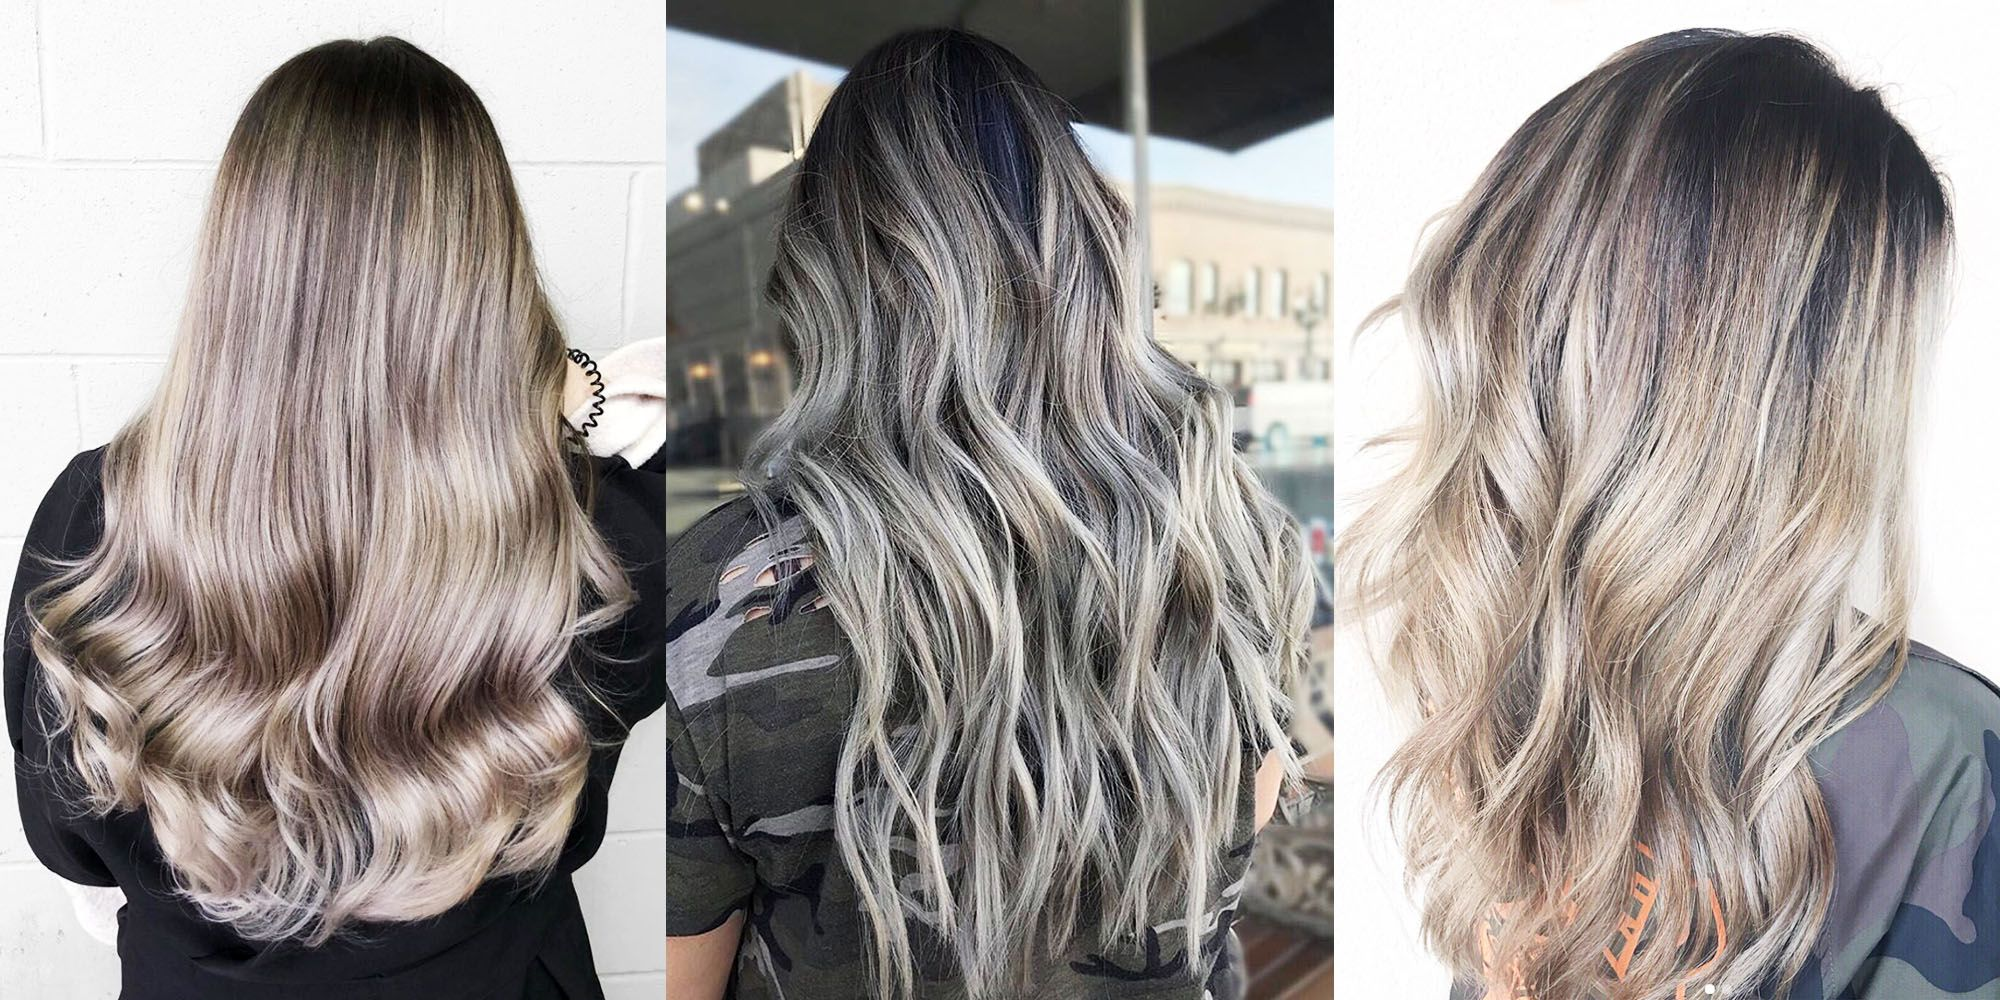 10 Ash Brown Hair Color Ideas 2018 Try Ash Brown Hair Dye Trend Now